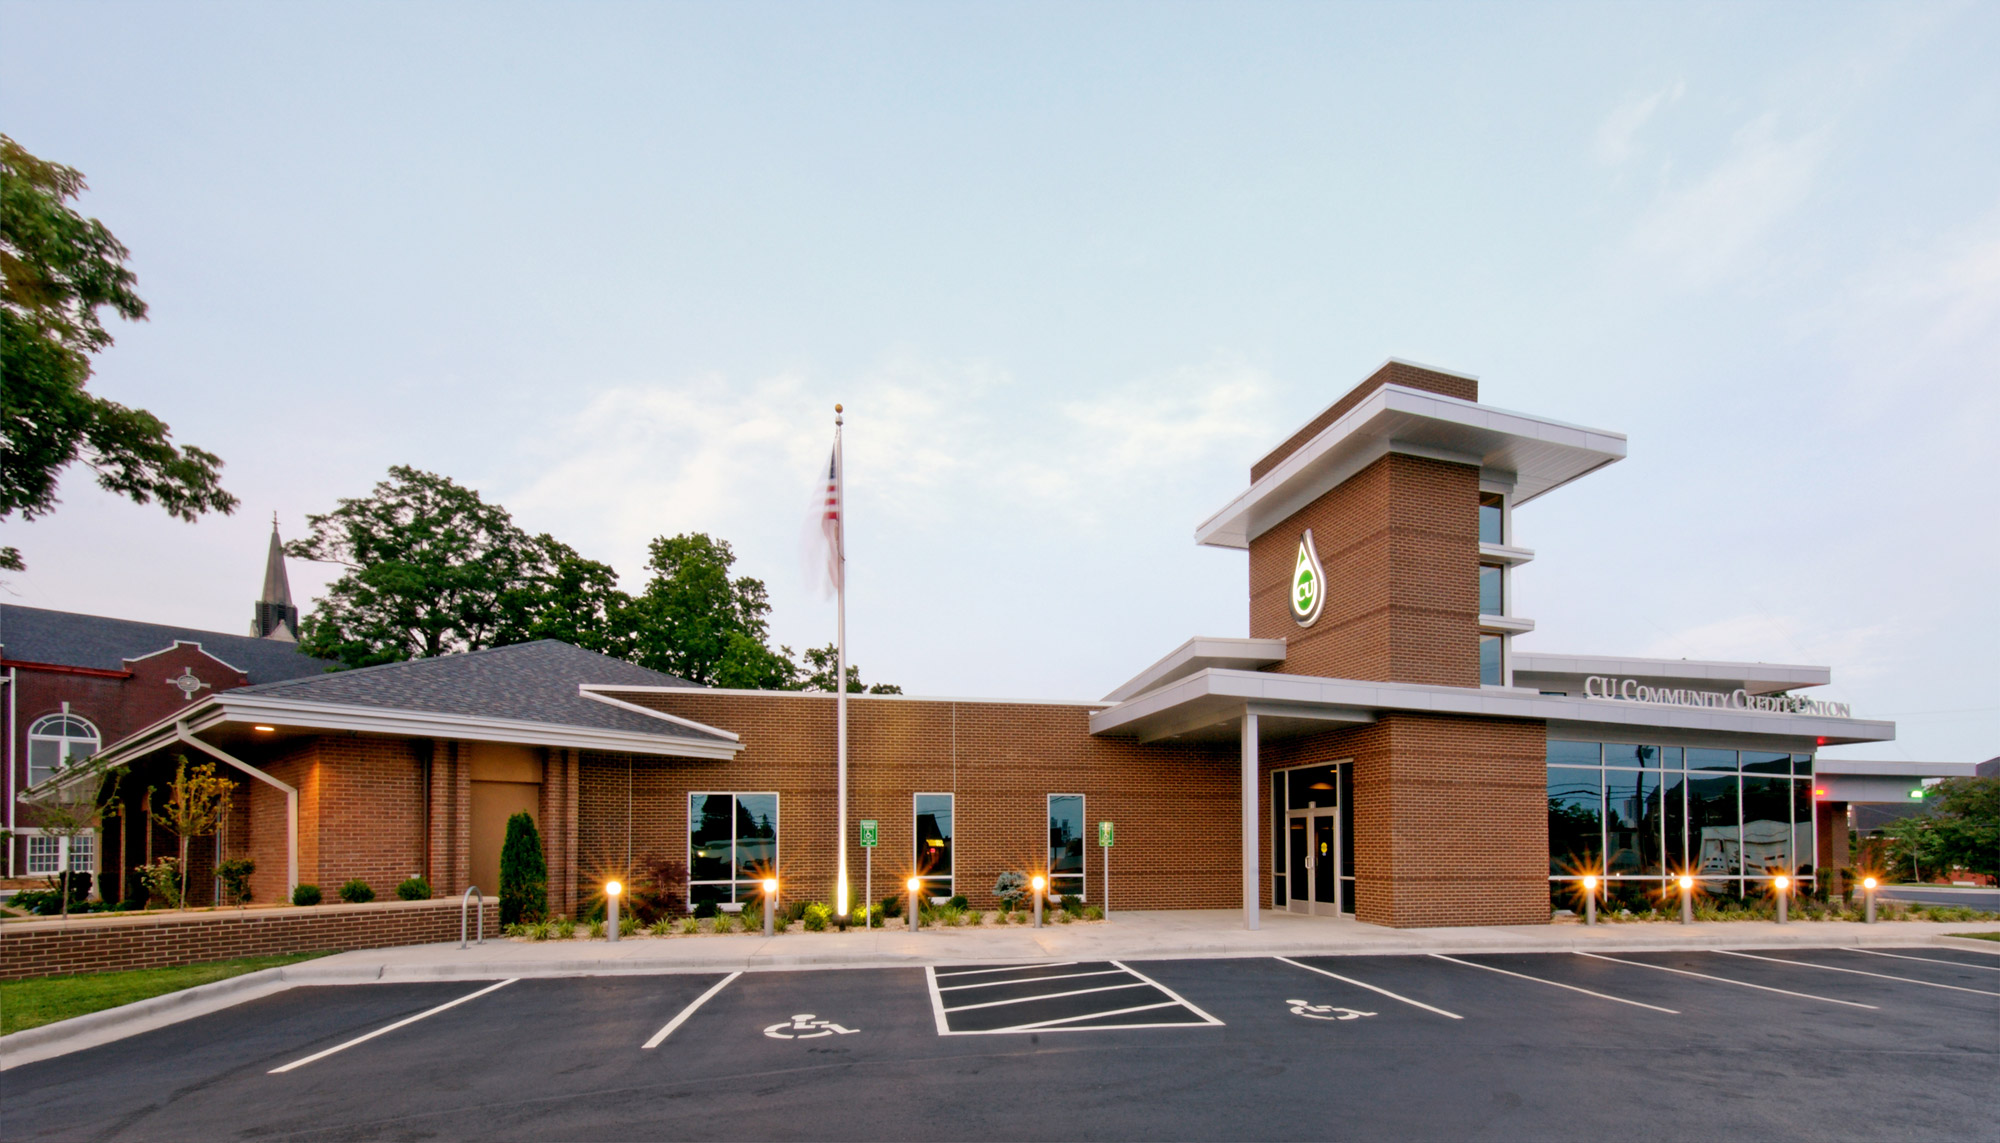 City-Utilities-Community-Credit-Union-H-Design-Exterior-02.jpg